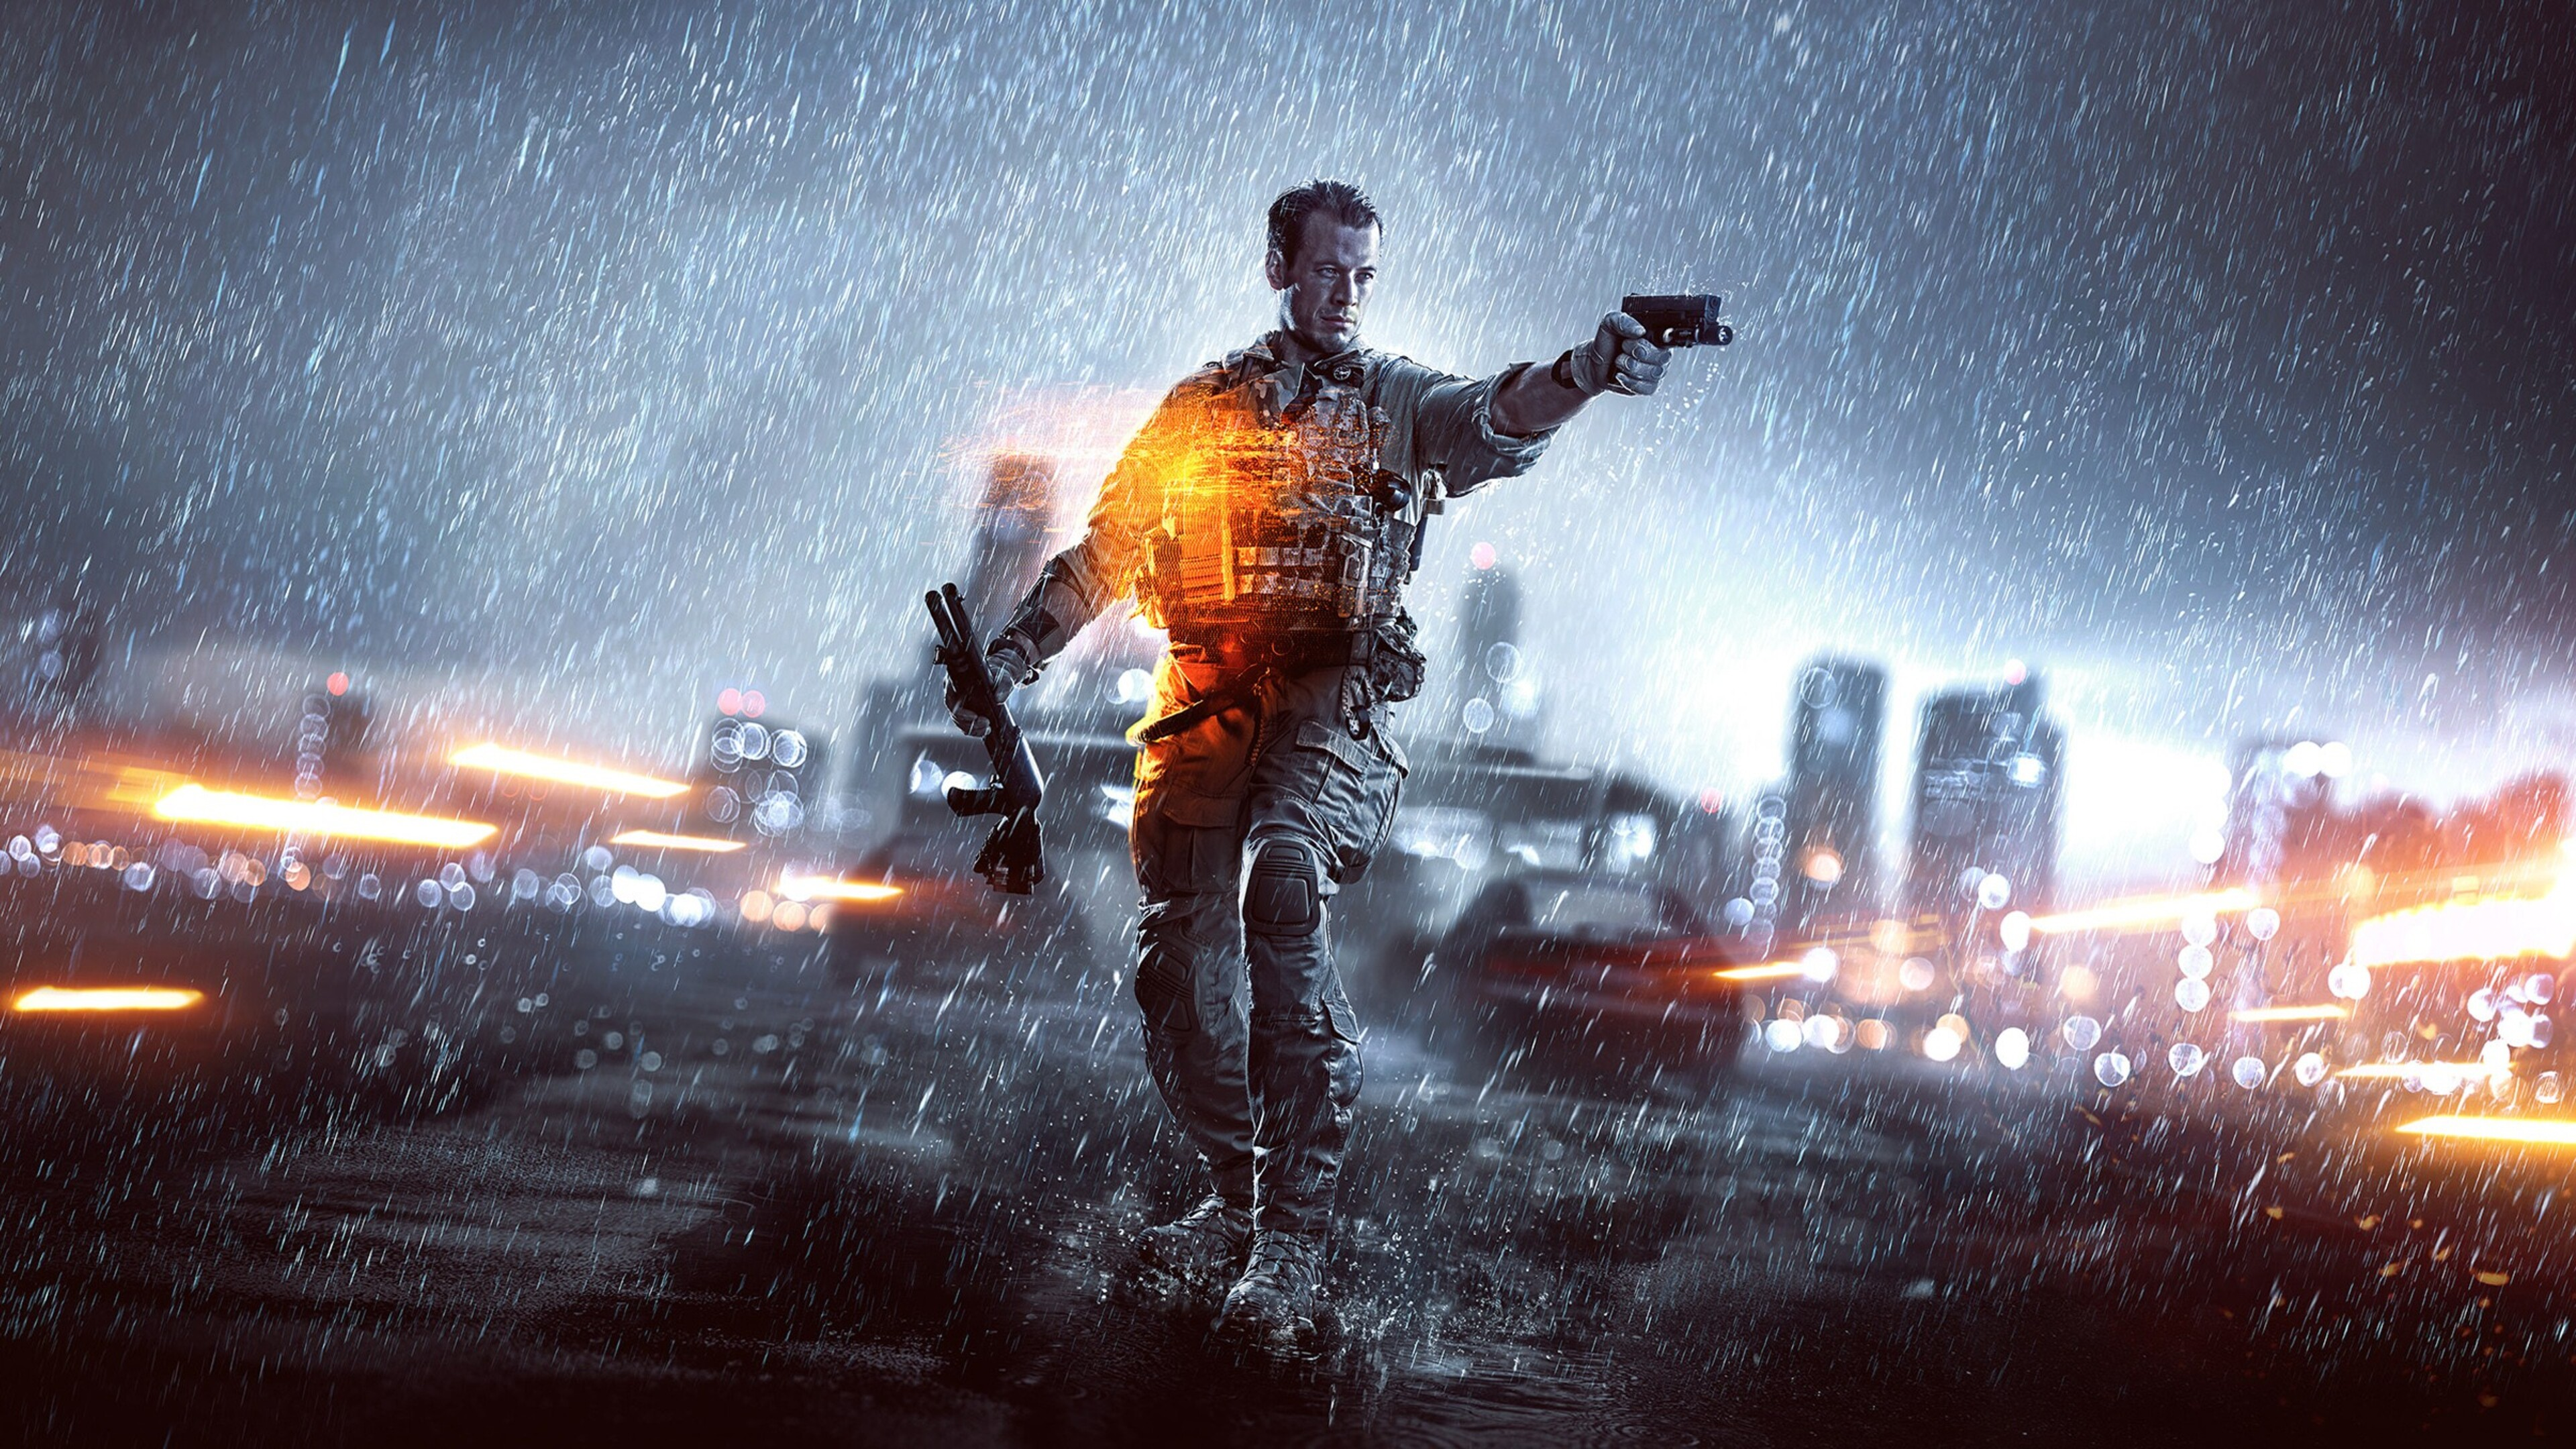 Download Wallpaper 1280x1280 Battlefield 4 Game Ea: 3840x2160 Battlefield 4 Battlefest 4k HD 4k Wallpapers